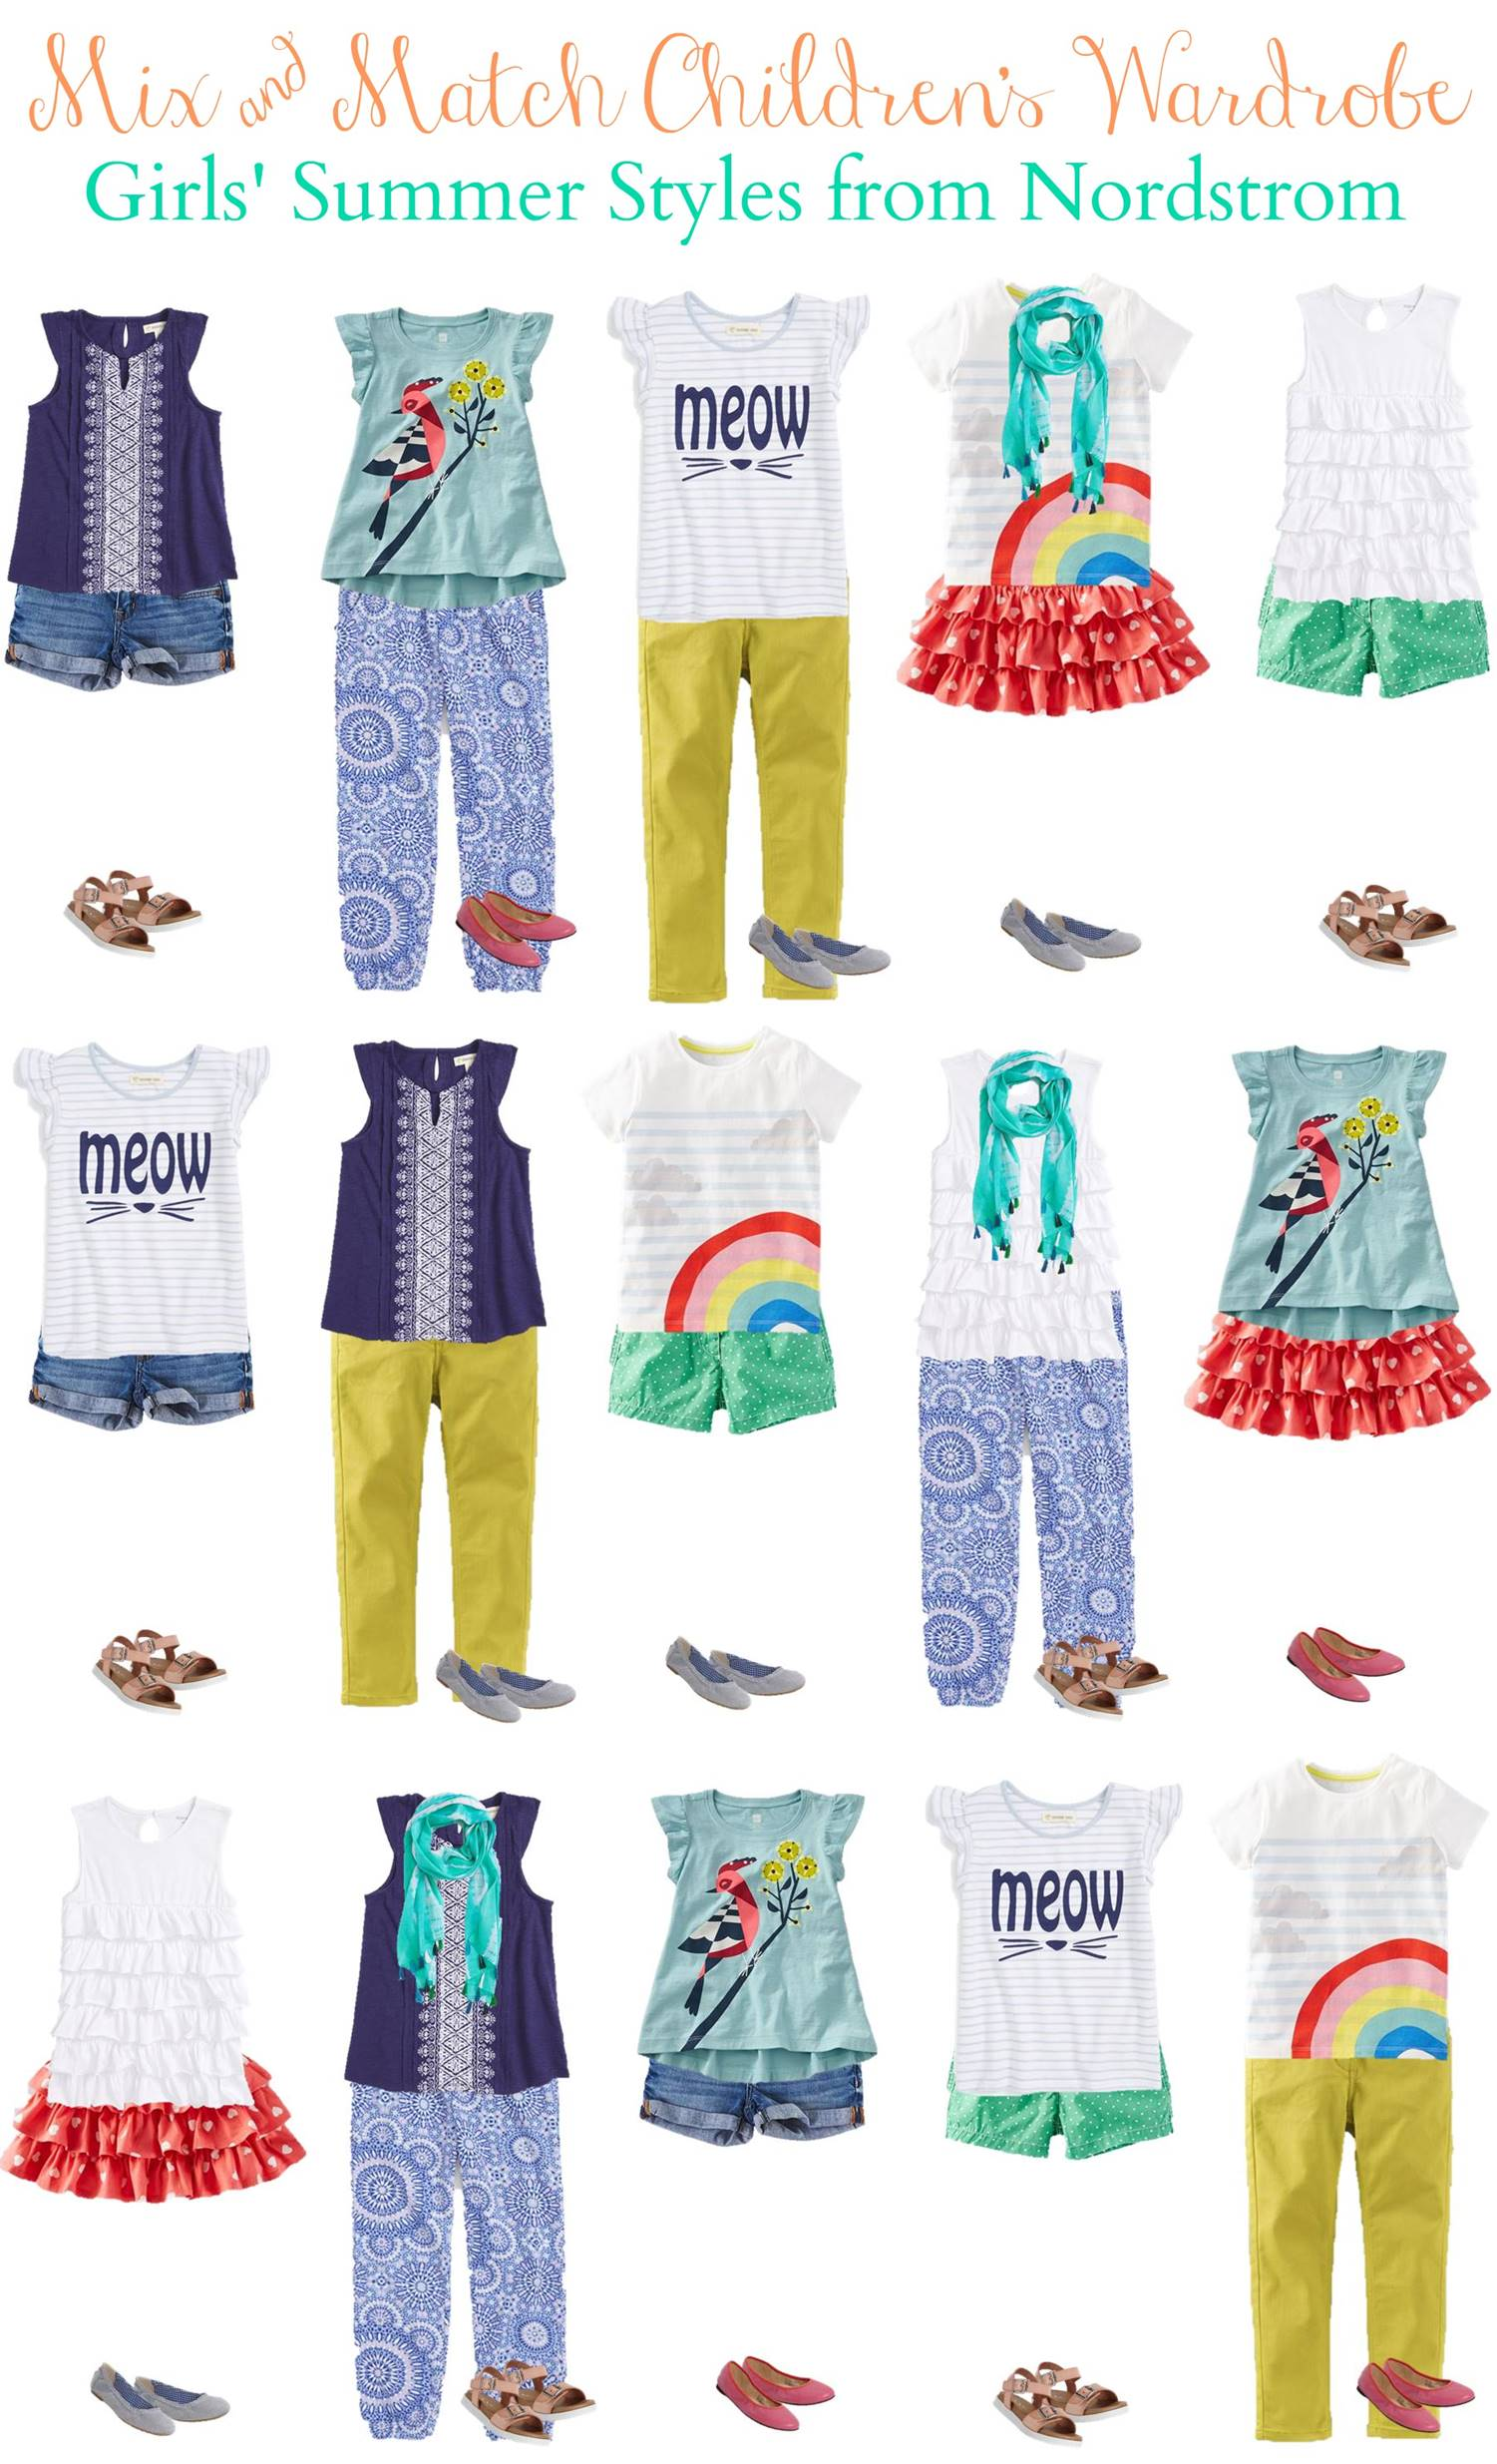 3.23 Mix and Match Fashion - Girls Summer Styles from Nordstrom VERTICAL